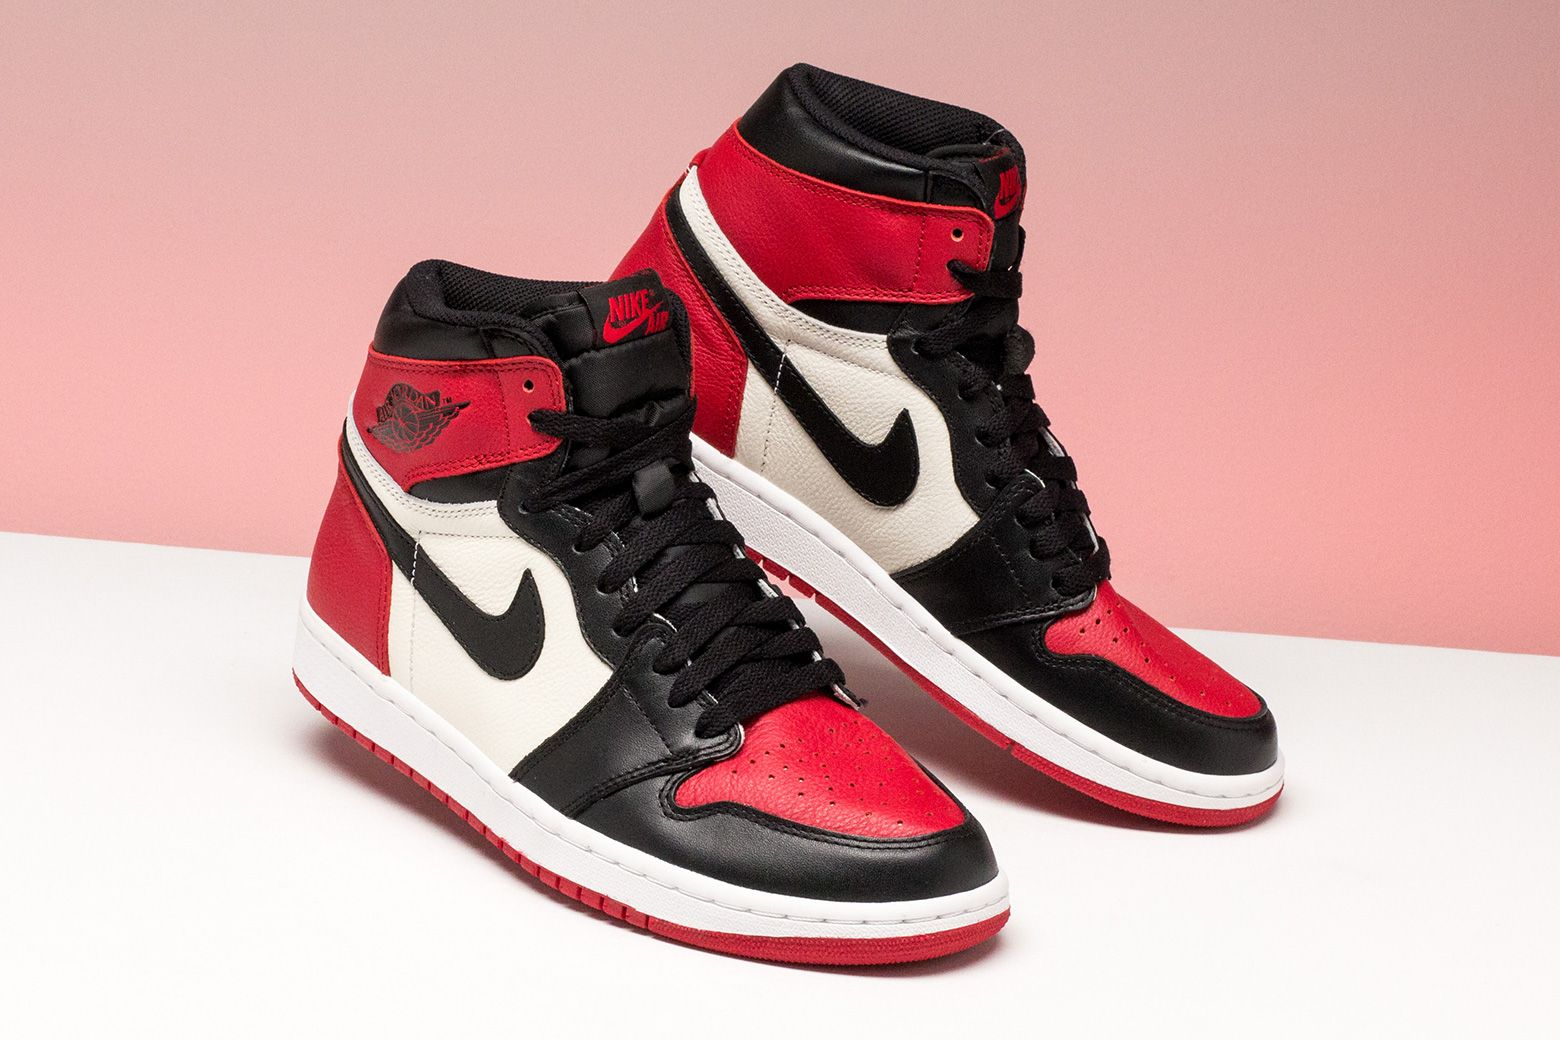 reputable site 4bae8 aedab Jordan 1 Retro High 'Bred Toe' Shoes - Size 7 | Air Jordan ...